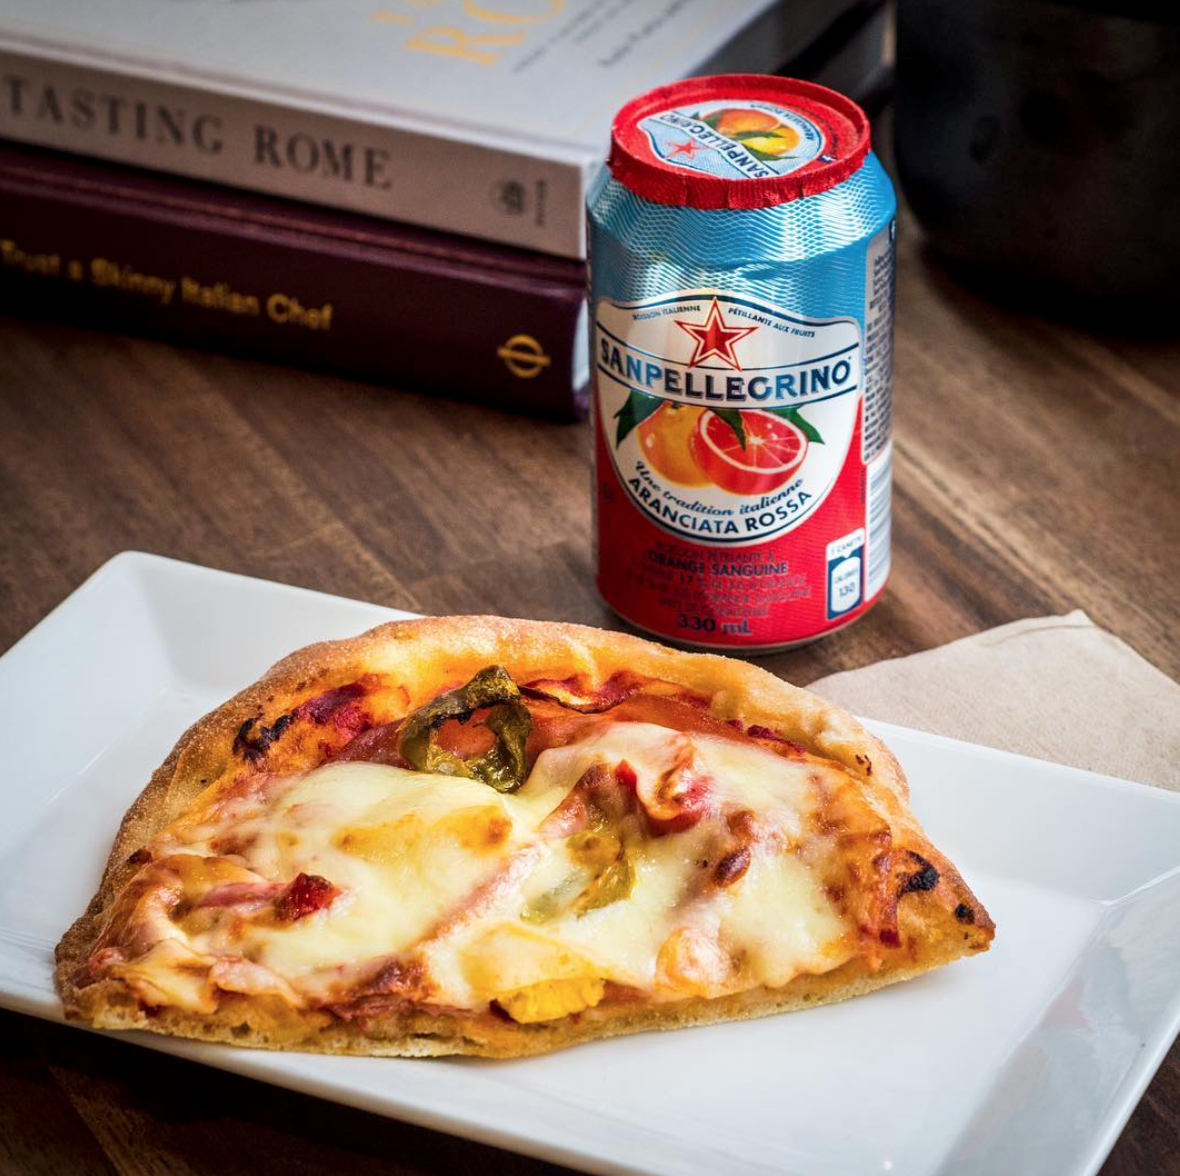 """Pop in for a slice of Sweet Heat pizza. Piled high with mortadella, chunks of fresh pineapple, and spicy banana peppers covered in a blanket of gooey provolone, this pizza is sure to cure you of your rainy day blues,"" // SUE KEEFE"